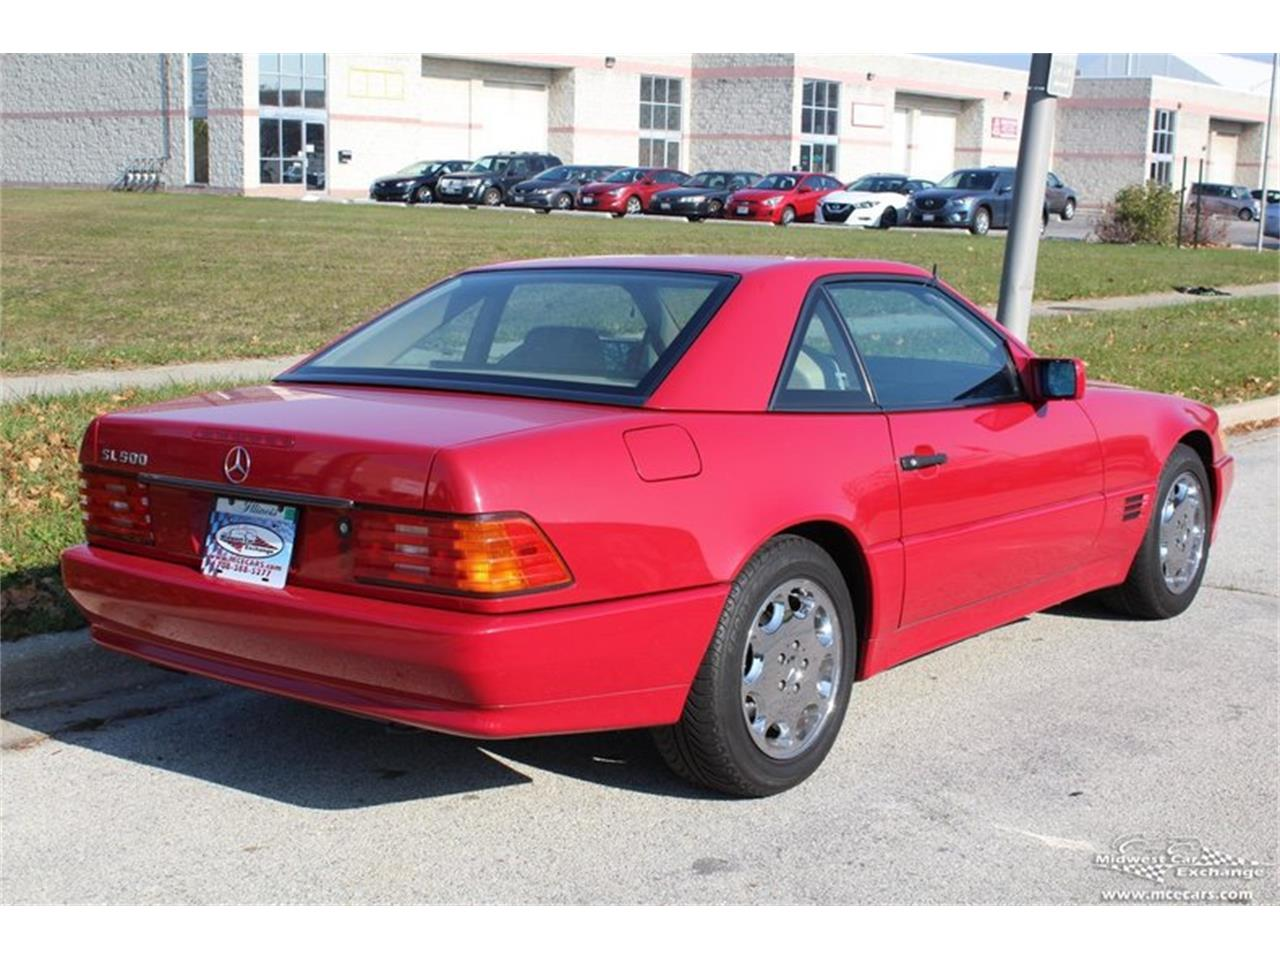 Large Picture of 1995 Mercedes-Benz SL500 located in Alsip Illinois - $14,900.00 - M42A